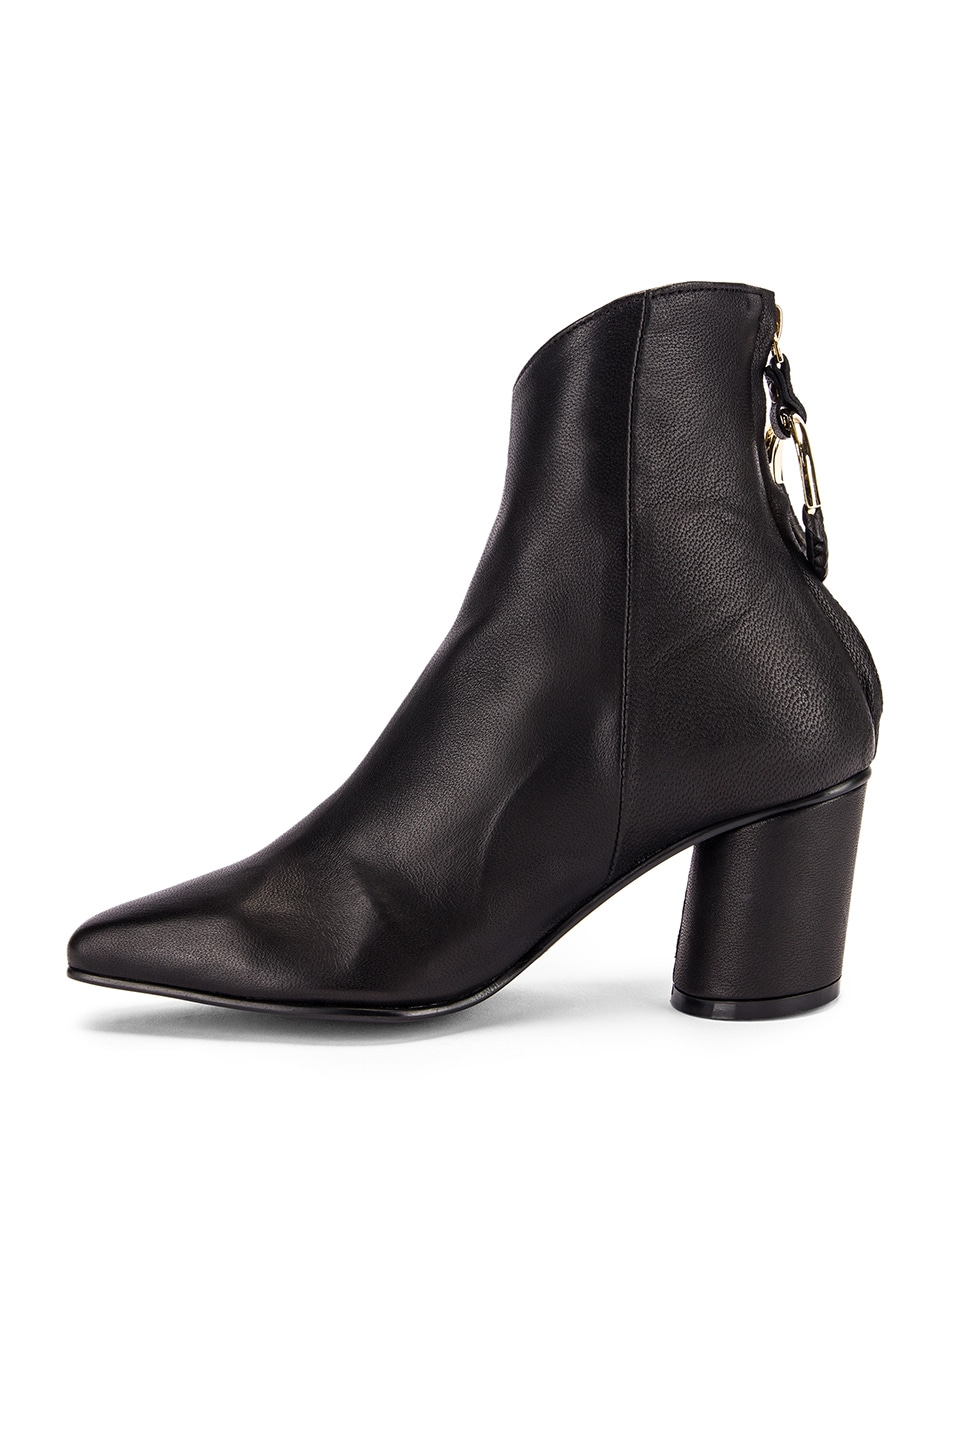 Image 5 of Reike Nen Oblique Turnover Ring Boots in Black